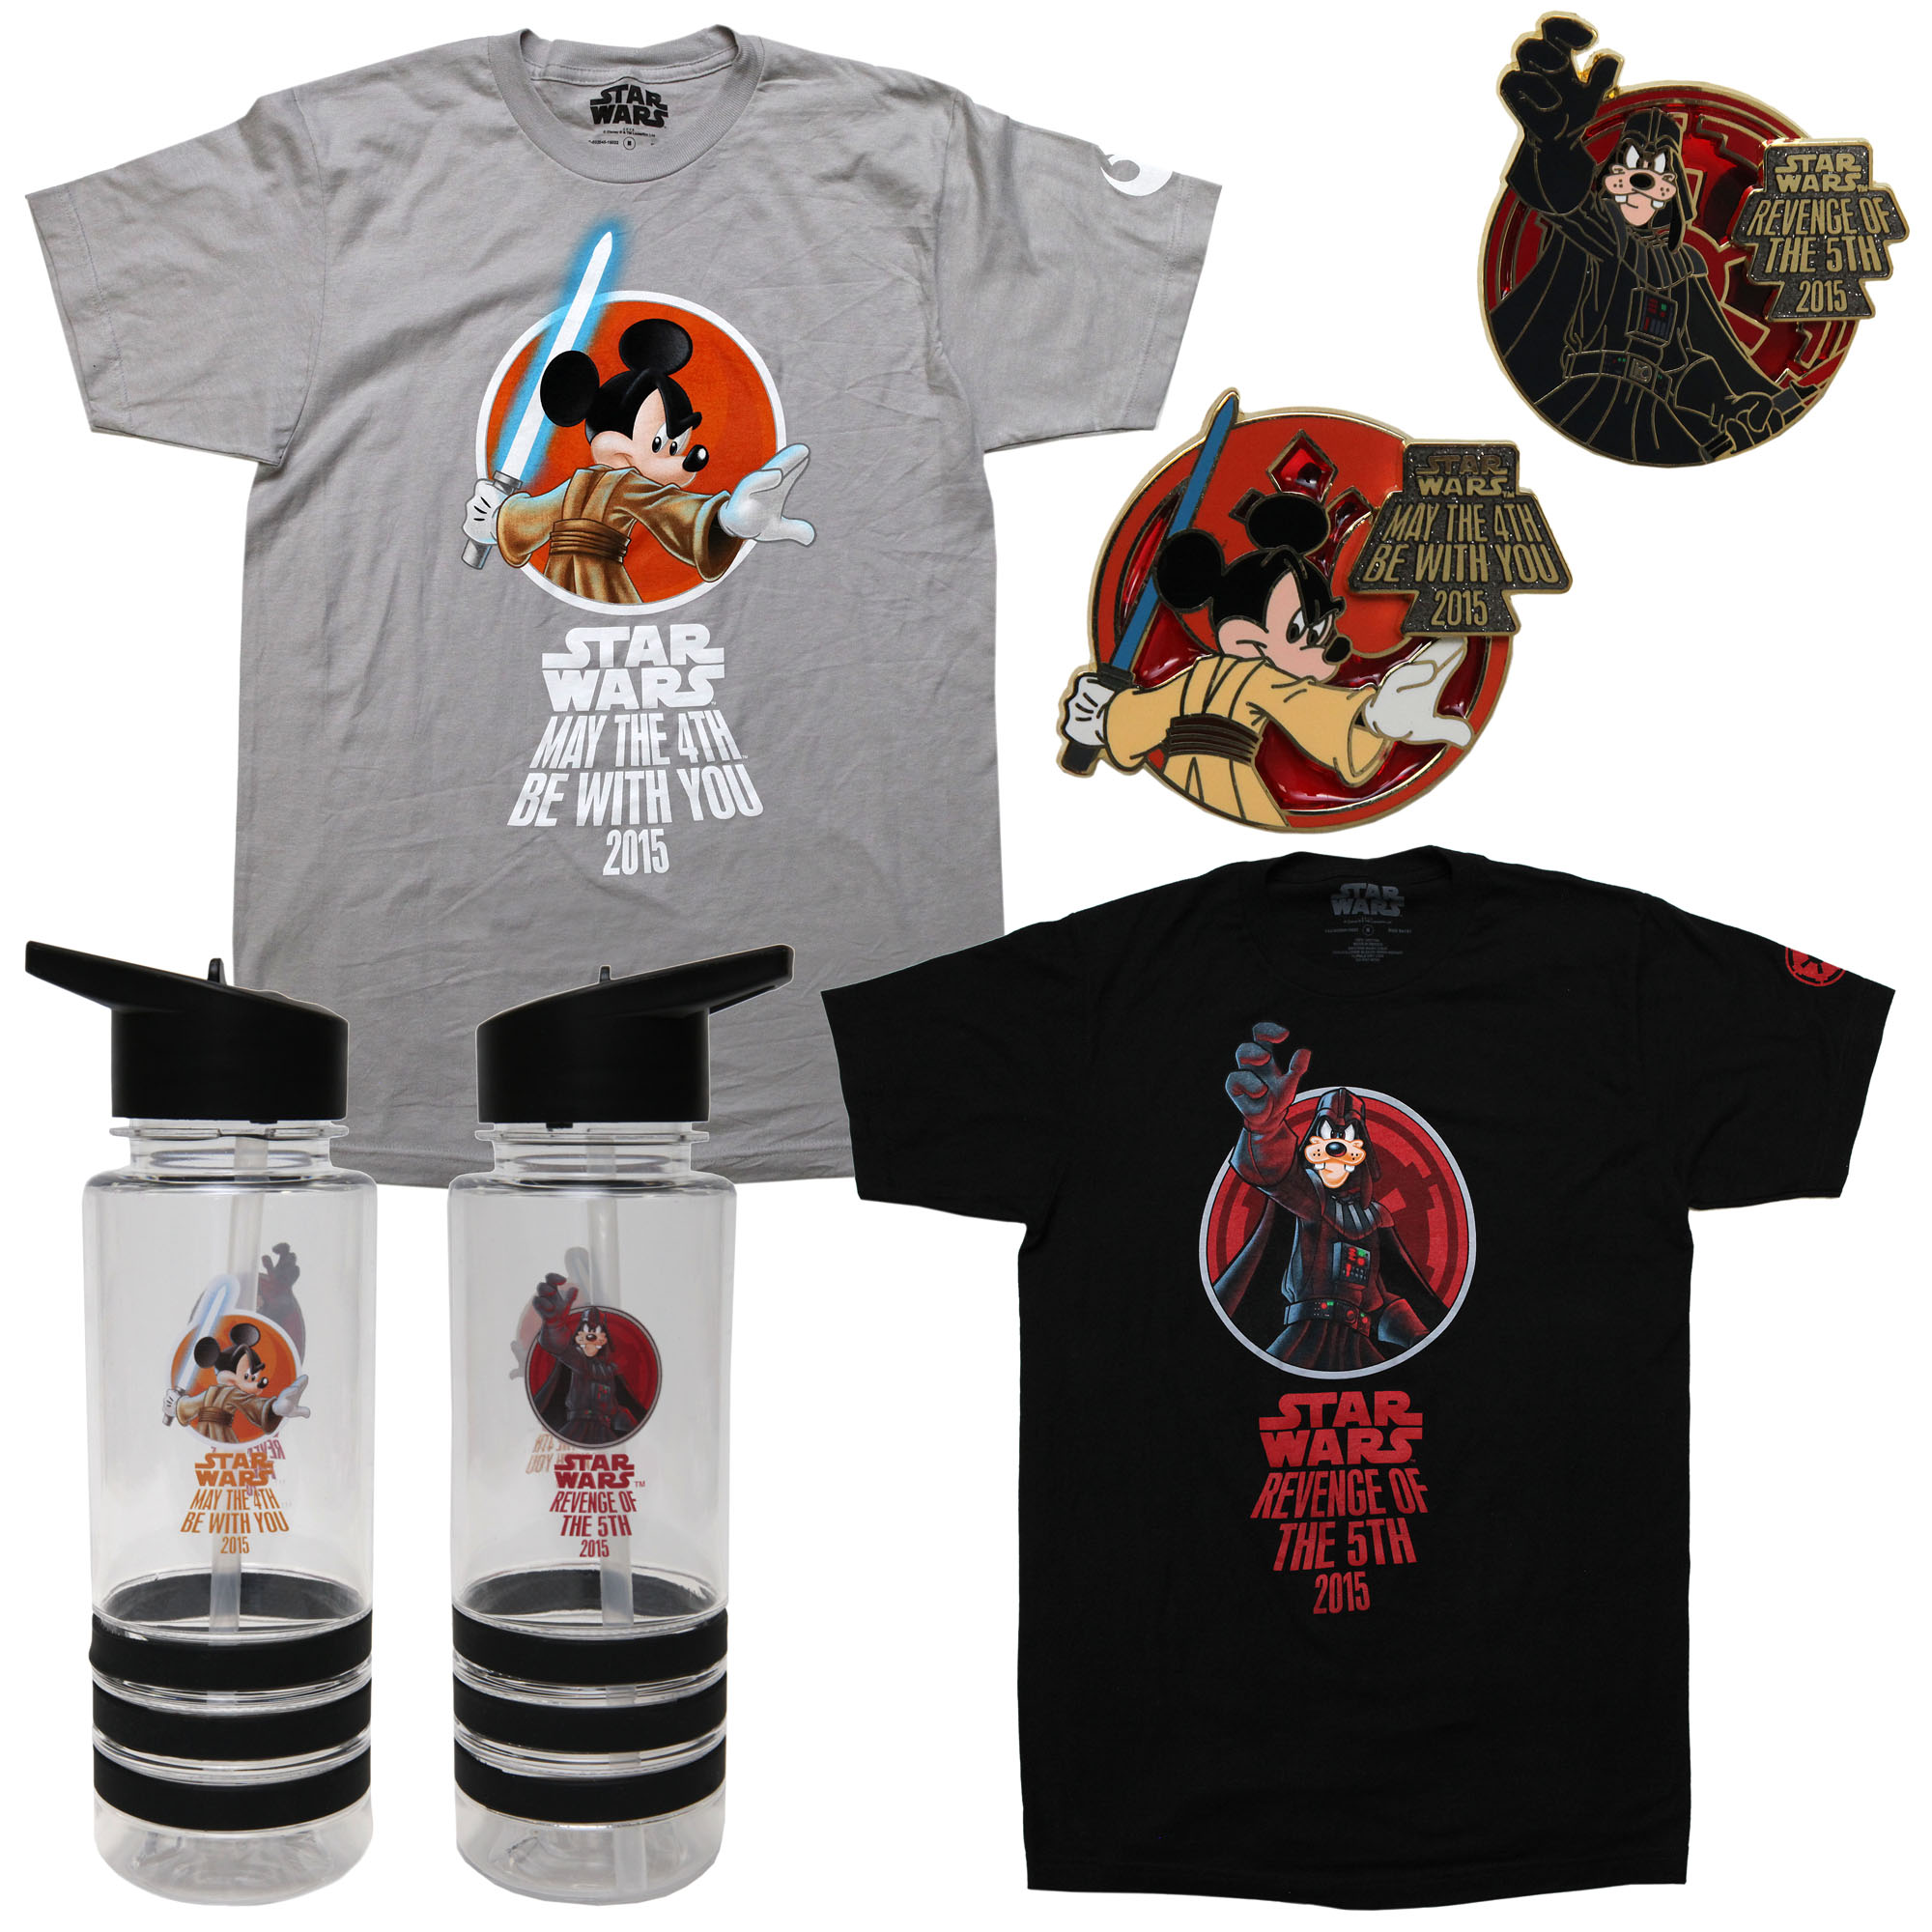 May The 4th Be With You Merchandise: New Star Wars Day Merchandise Now Available At Disney